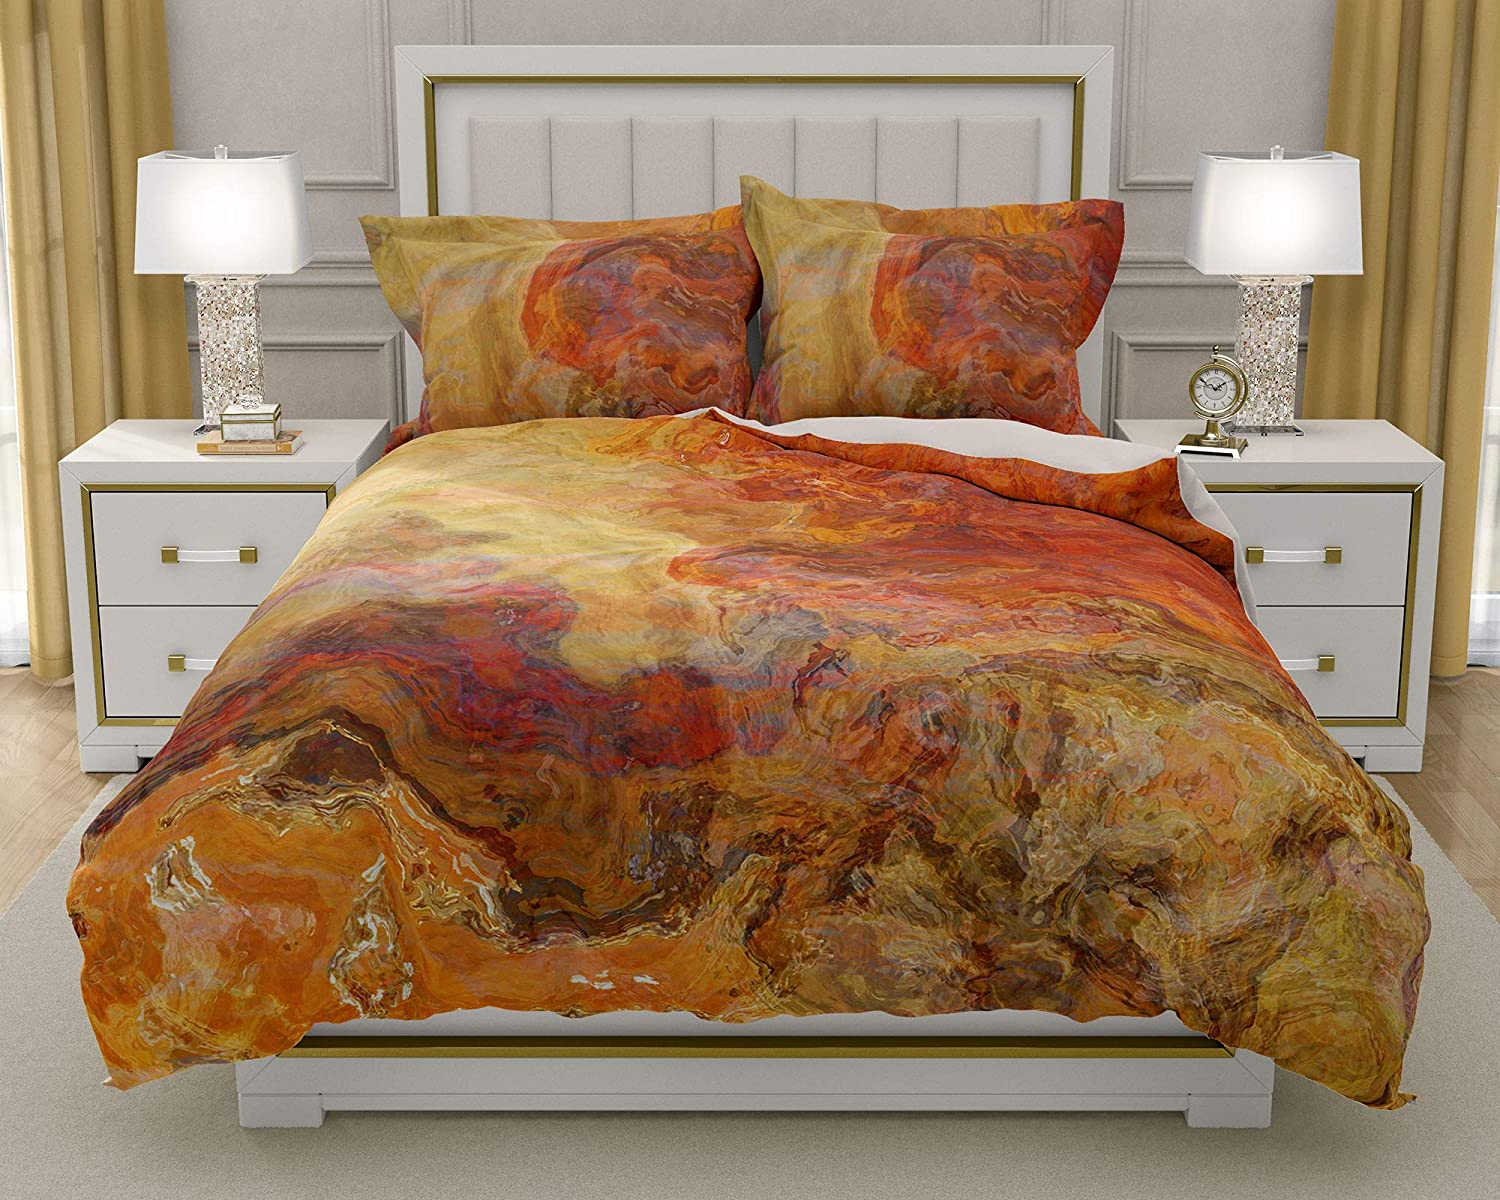 Image of Home and Kitchen King or Queen 3 pc Duvet Cover Set with abstract art, Magma